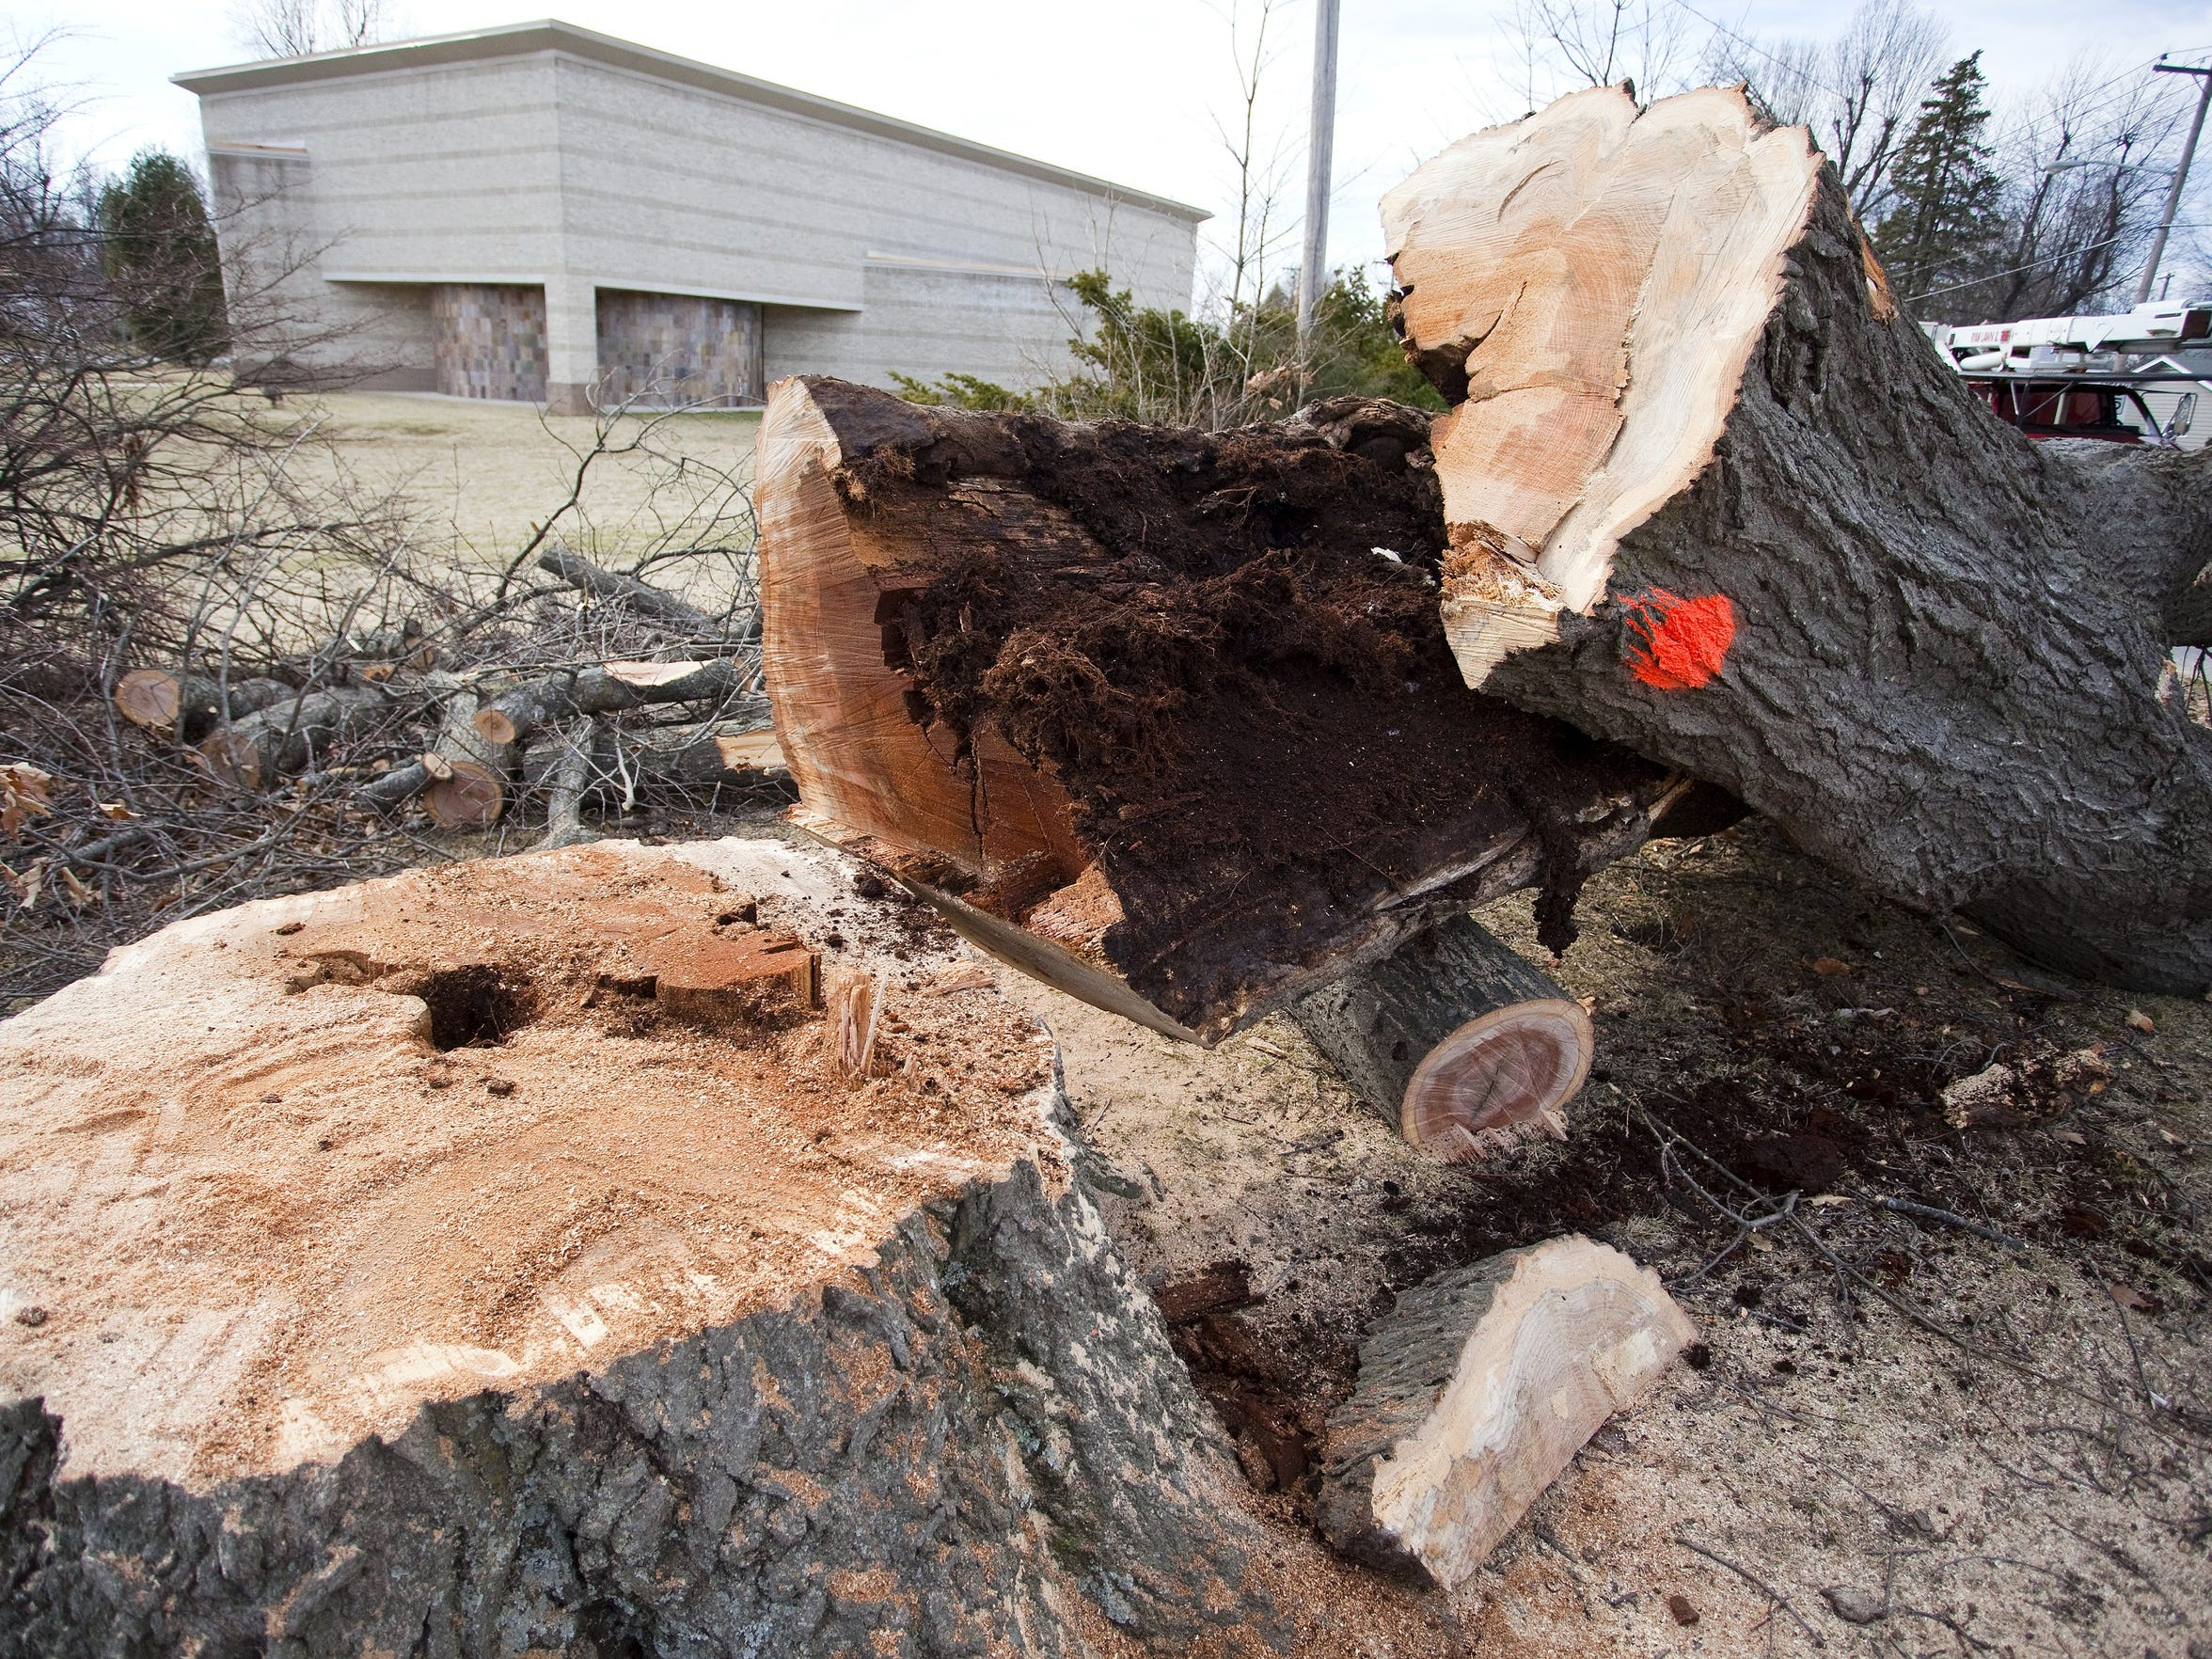 Facility upkeep issues for the art museum in recent years included tree removal. This oak tree was among several felled in 2013. It split in half due to a rot inside the trunk of the tree.